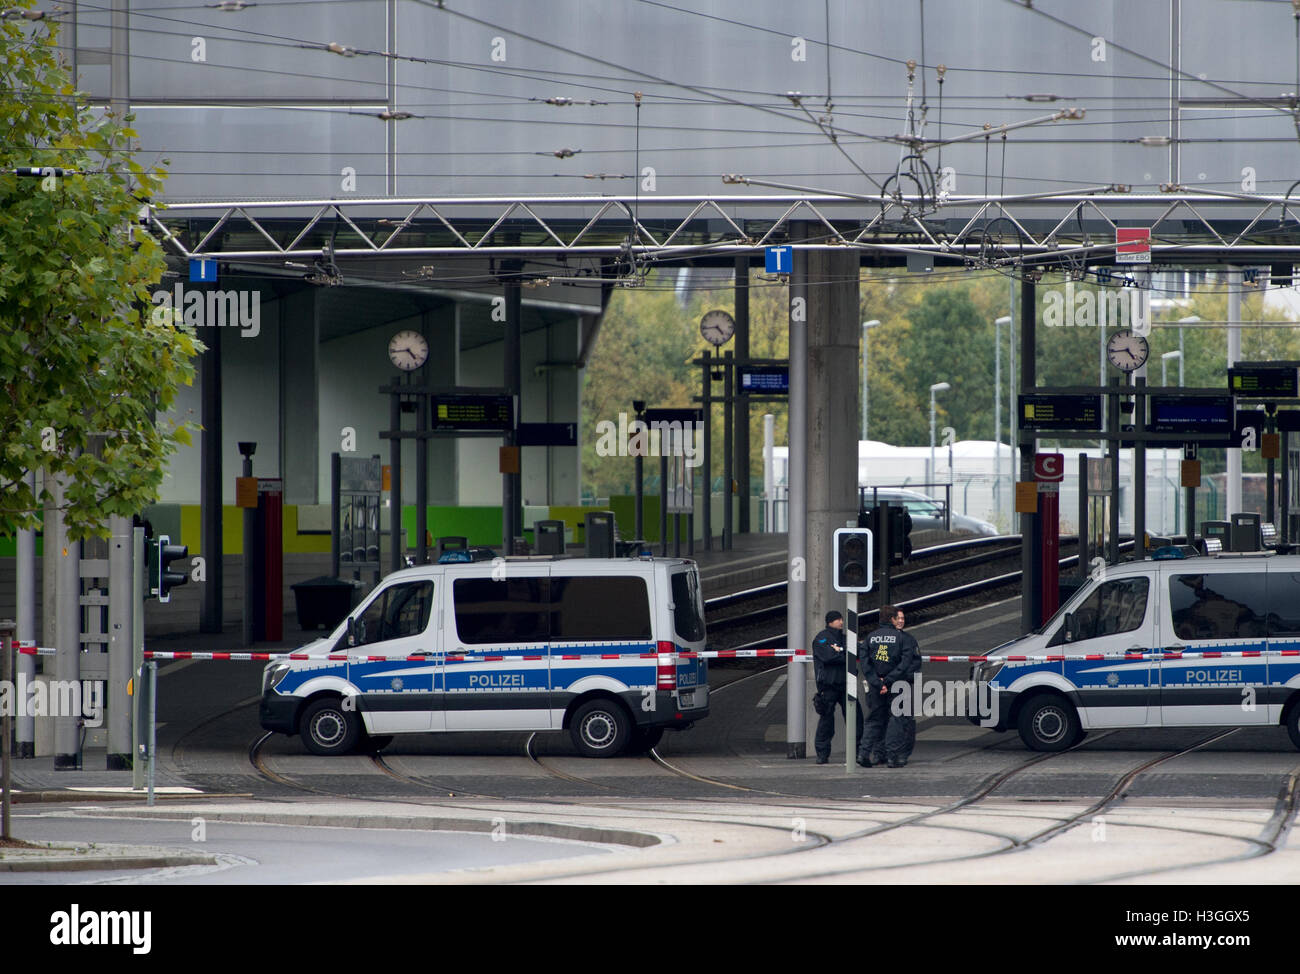 Saxony, Germany. 08th Oct, 2016. Police secure the perimeter of Chemnitz Central Station in the region of Saxony, - Stock Image